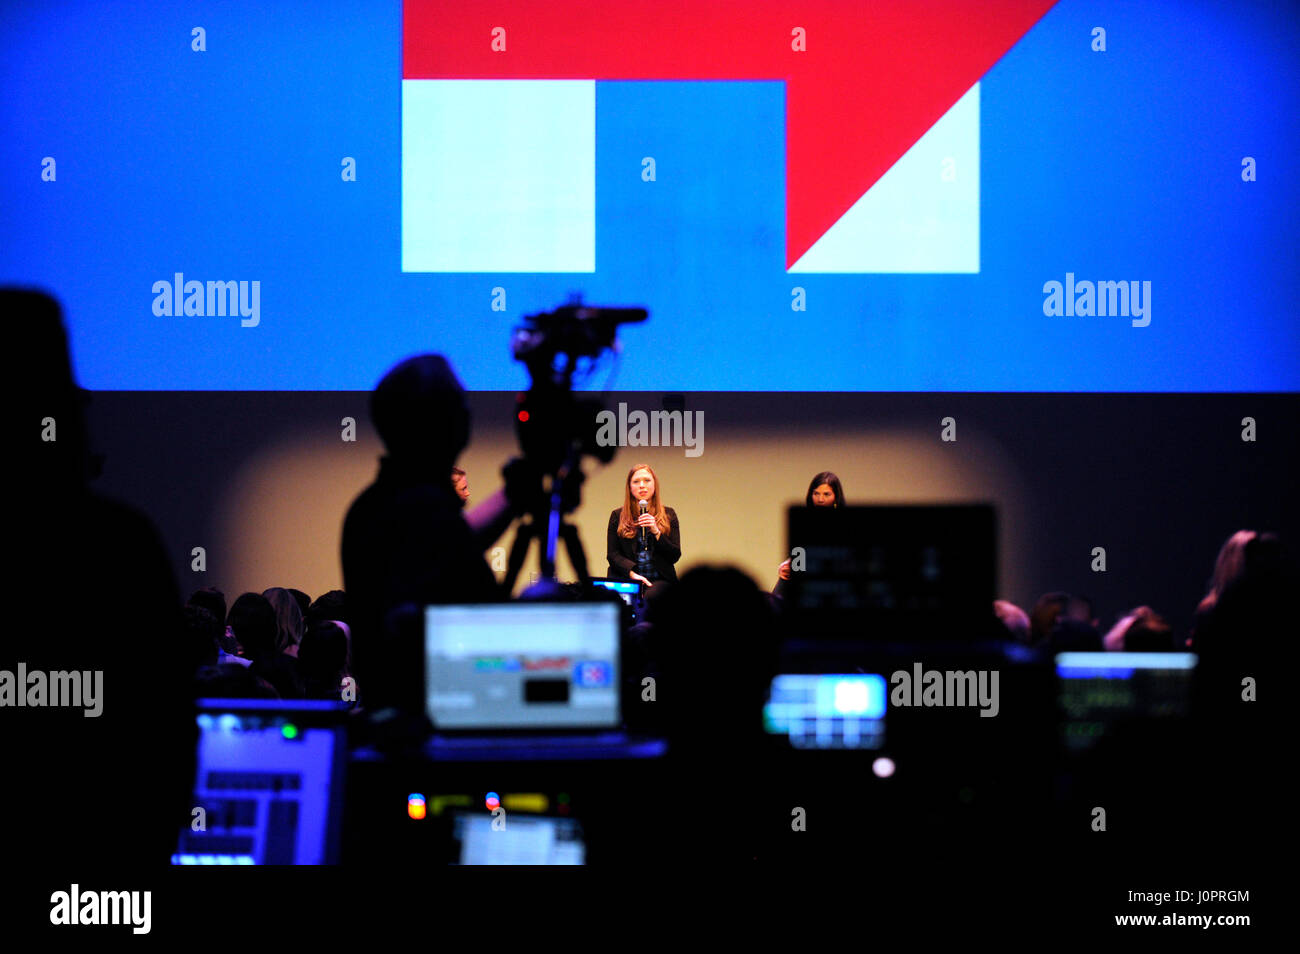 Behind the scenes of the audio, light and video production while Chelsea Clinton speaks to a crowd at NeueHouse - Stock Image